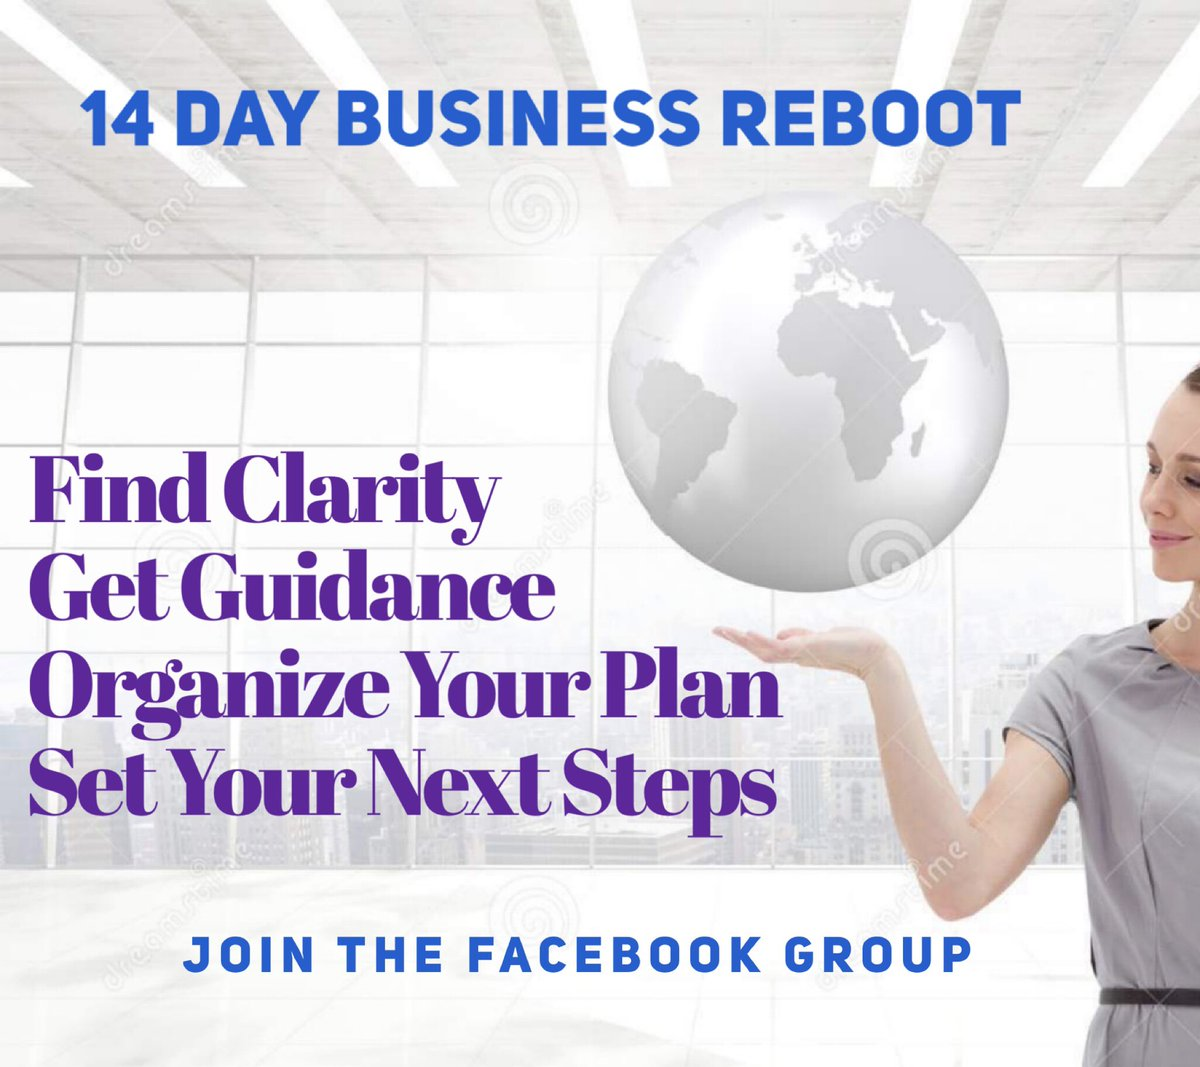 This 14 Day Business ReBoot for business women who need to break through a plateau or refocus to level up!  It's free( for now but not forever) & starts next week! Short daily modules.  Access by joining my Business Resilience ReBoot group on Facebook.  https://t.co/PF1SsOE0el